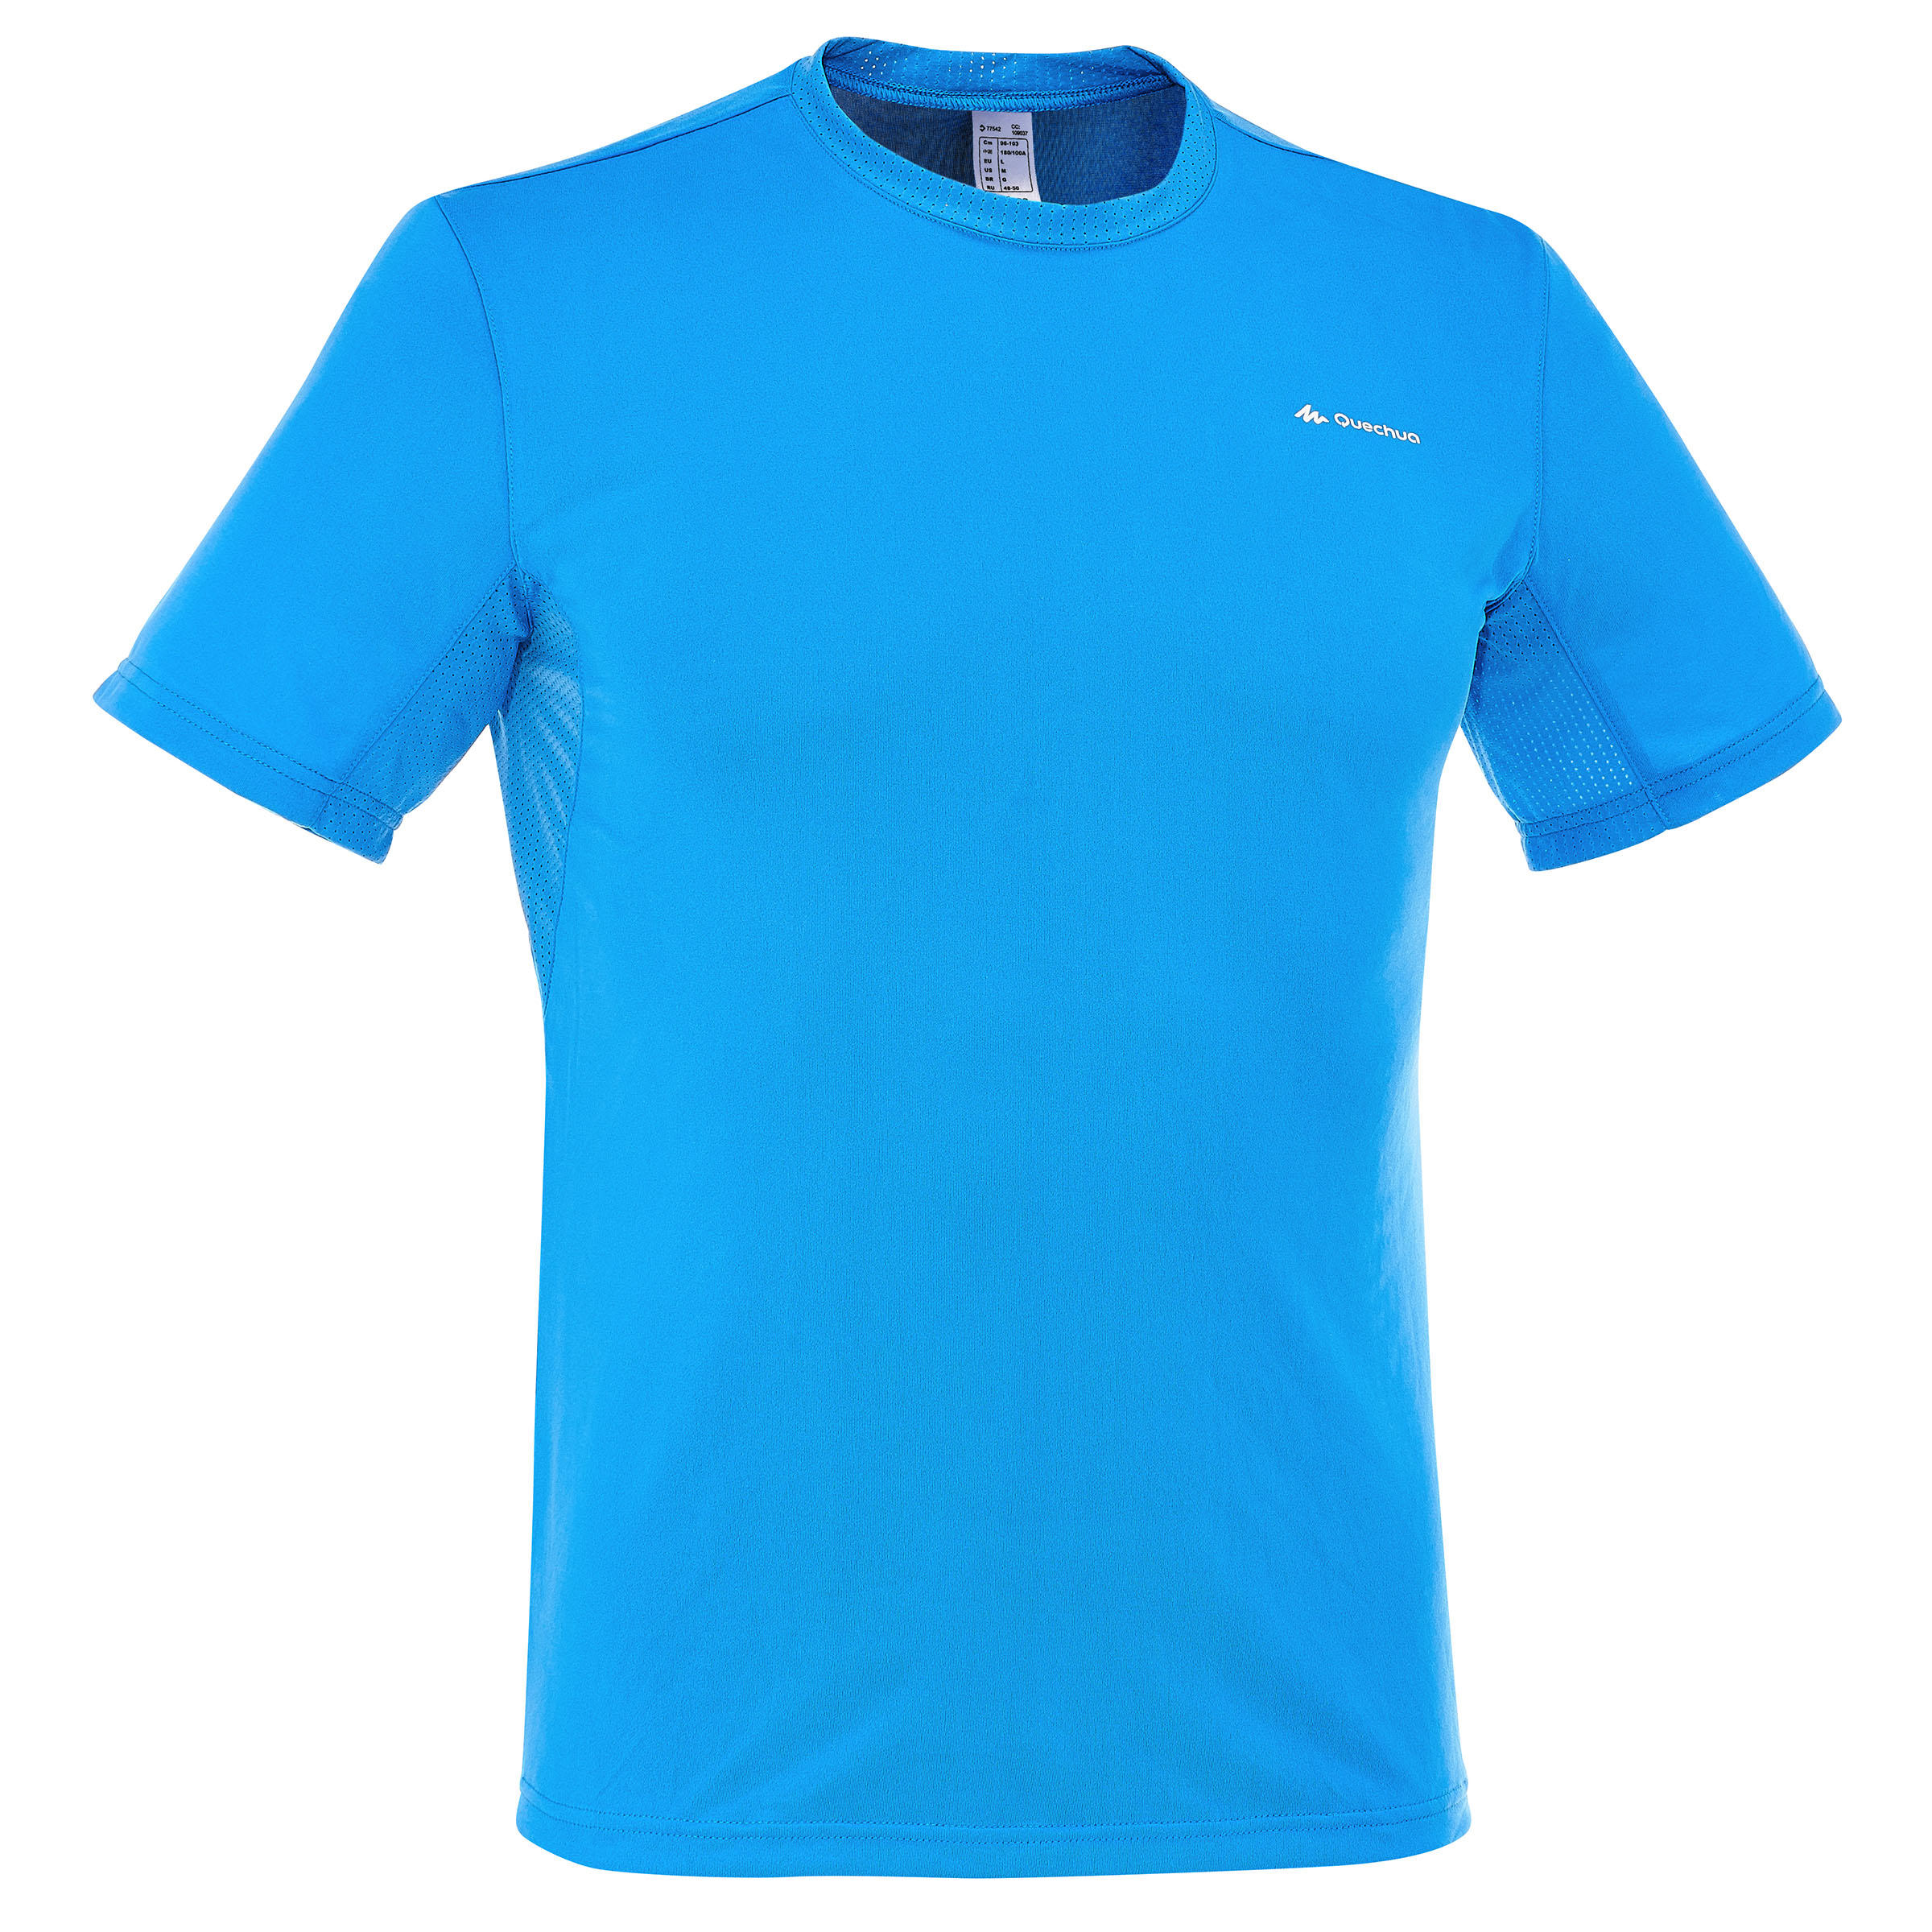 Tech Frech 50 Men's Short Sleeve Hiking T-shirt - Blue